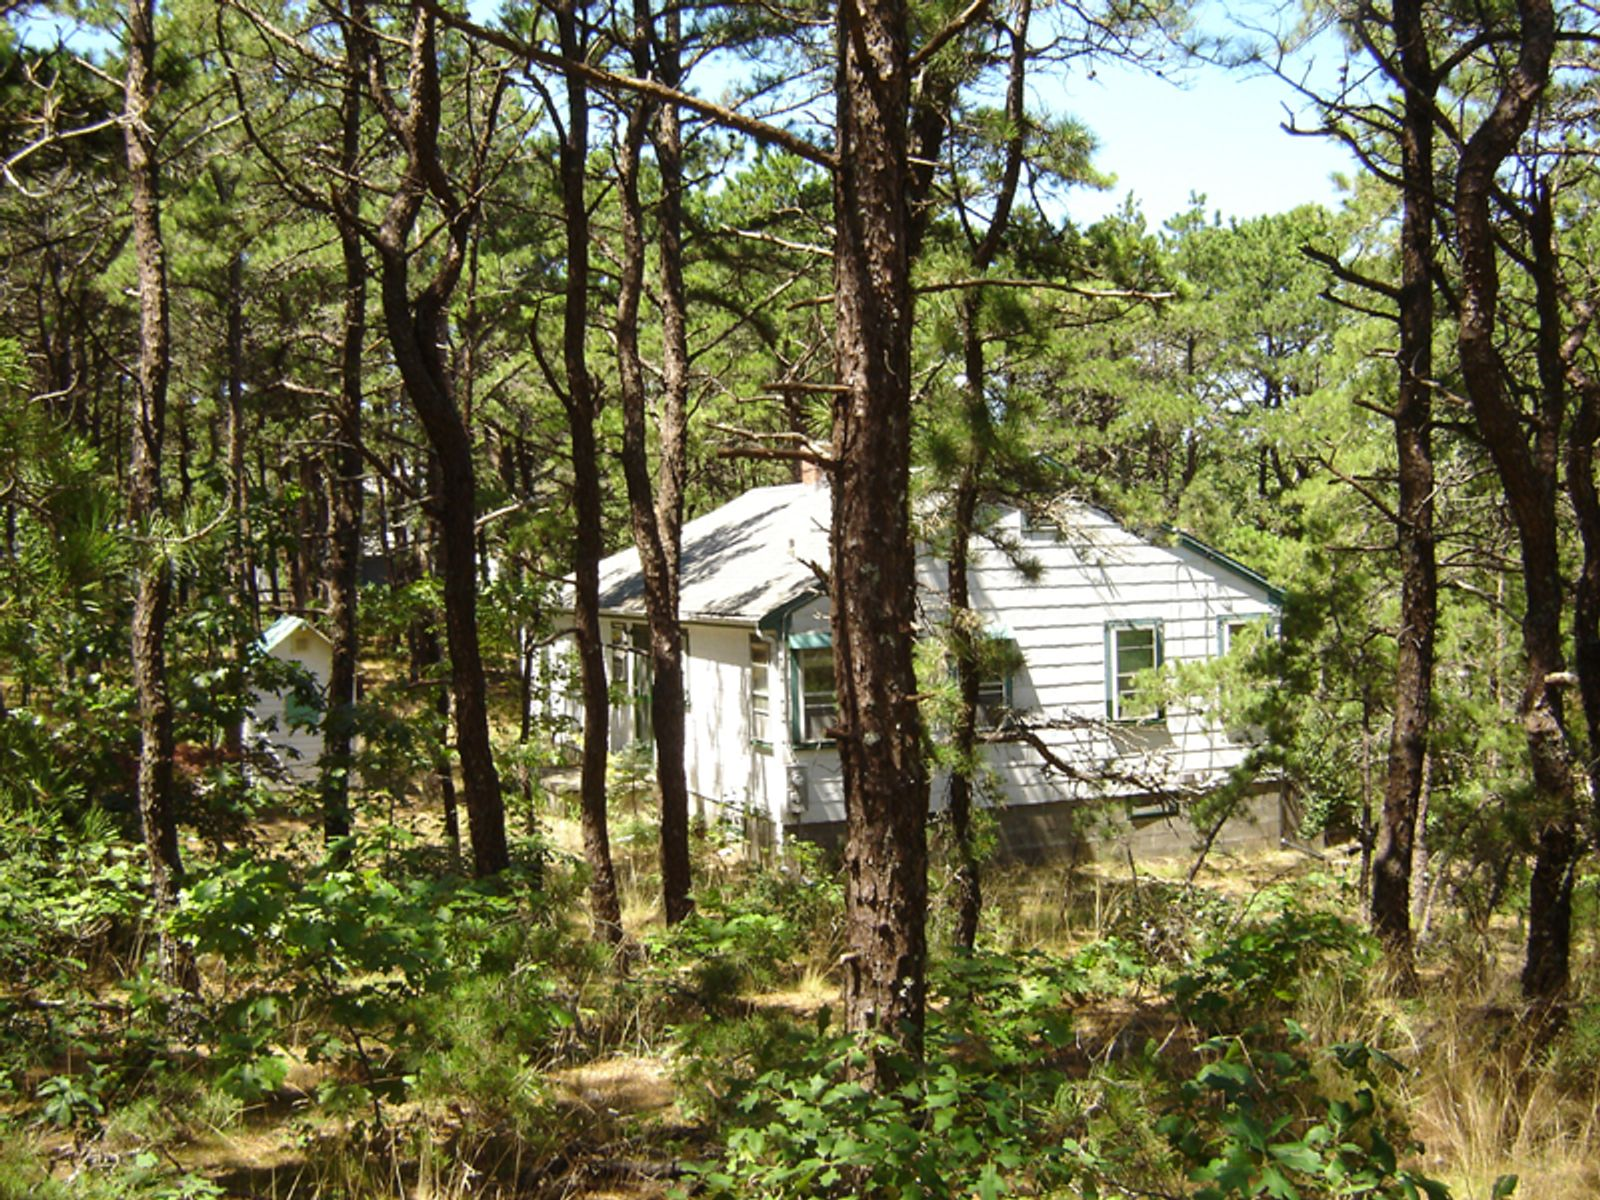 Beach Cottage, Wellfleet MA Single Family Home - Cape Cod Real Estate